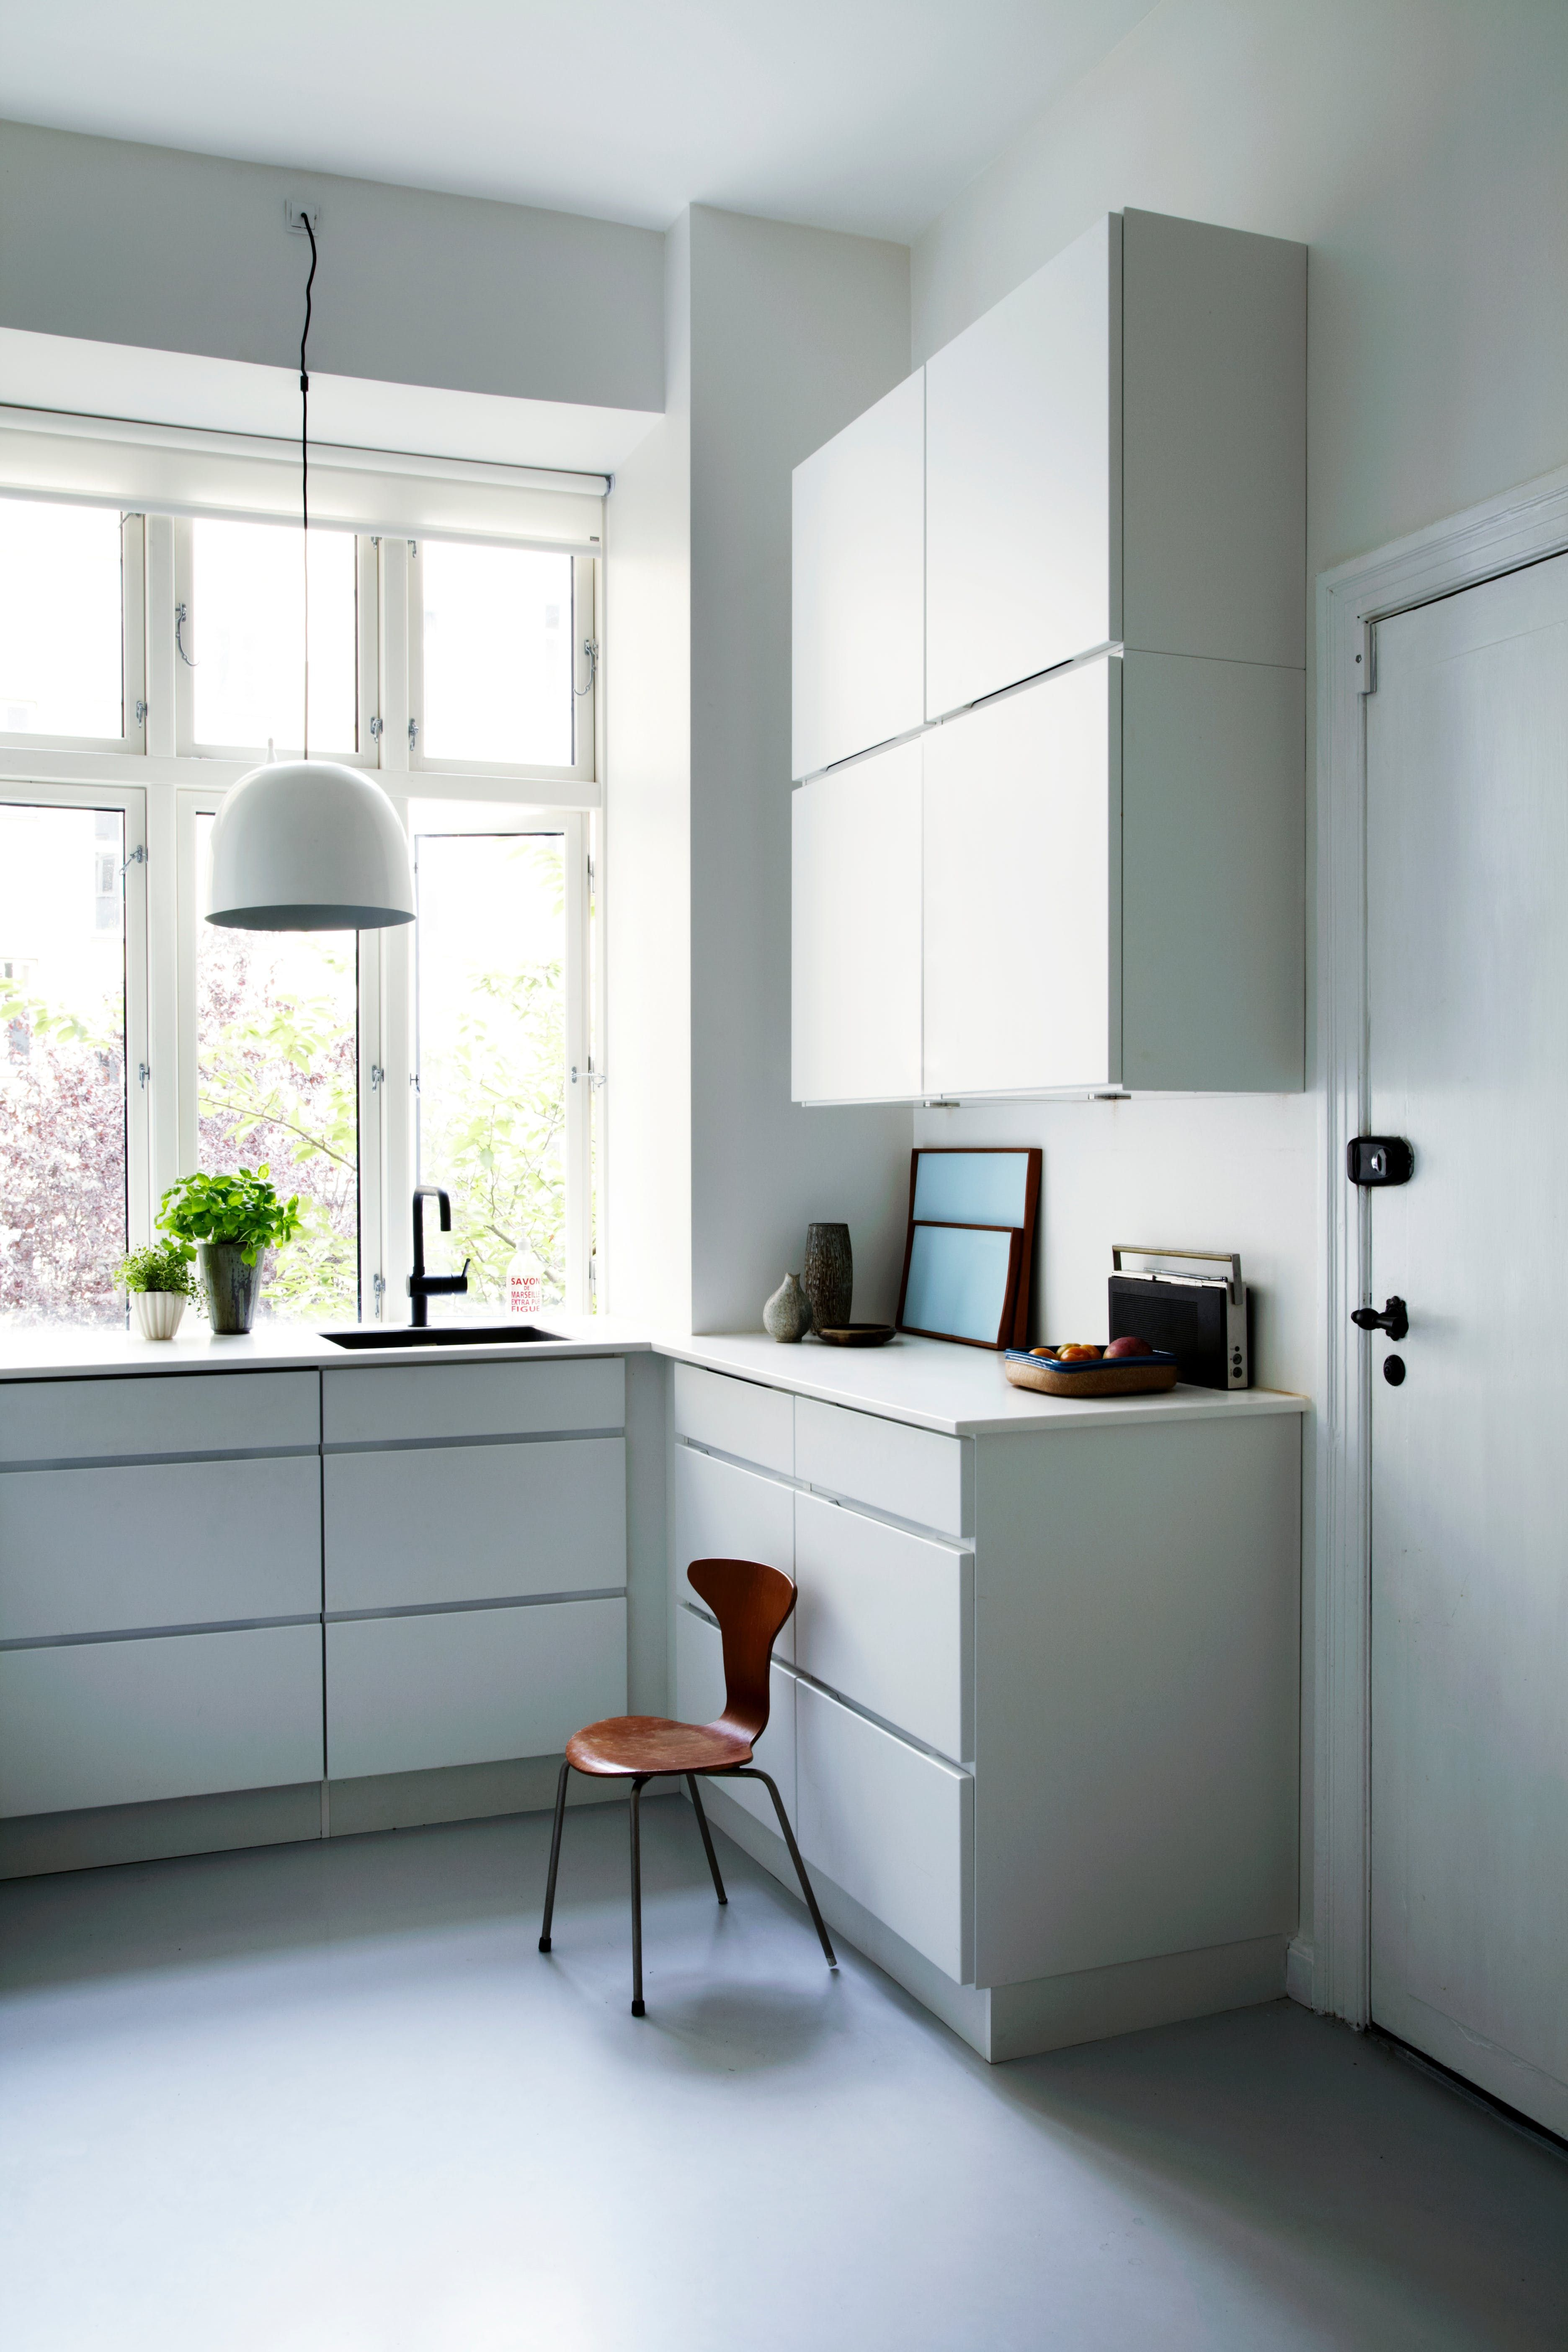 Arne jacobsen interior a playful classic u contemporary home in copenhagen  kitchens